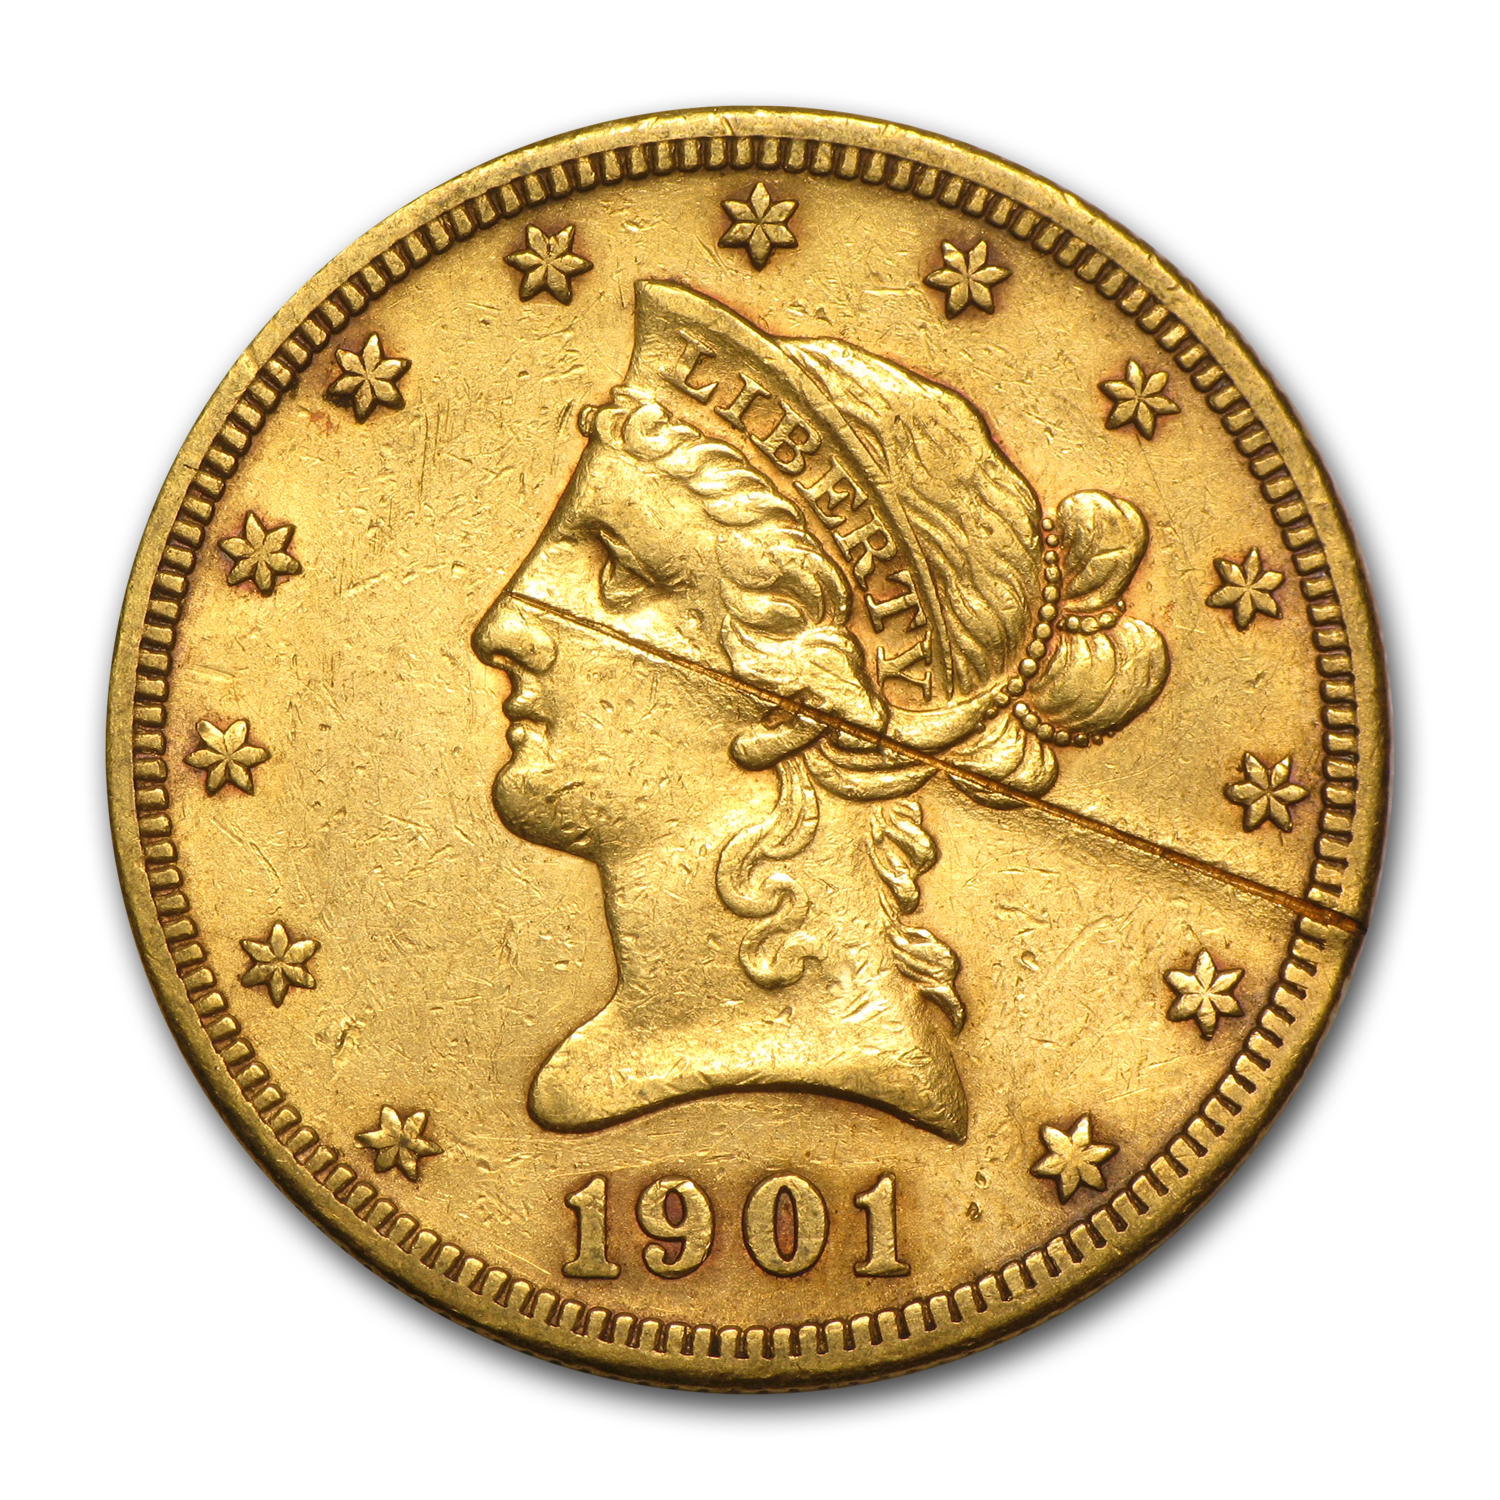 $10 Liberty Gold Eagle (Heavily Damaged)